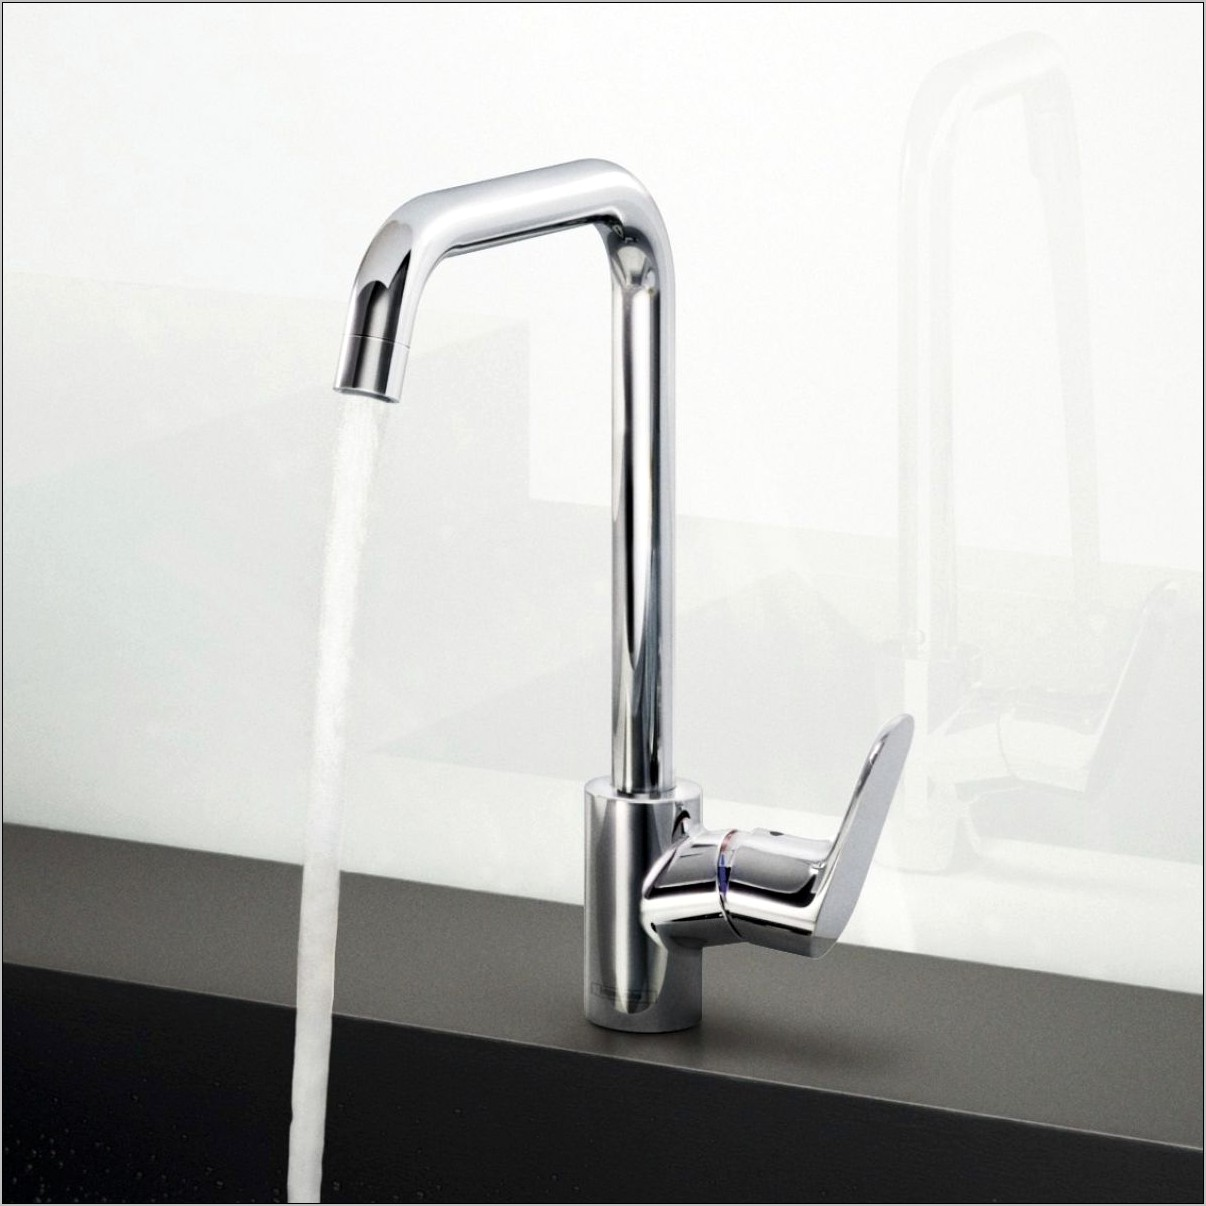 Hansgrohe Decor Kitchen Mixer